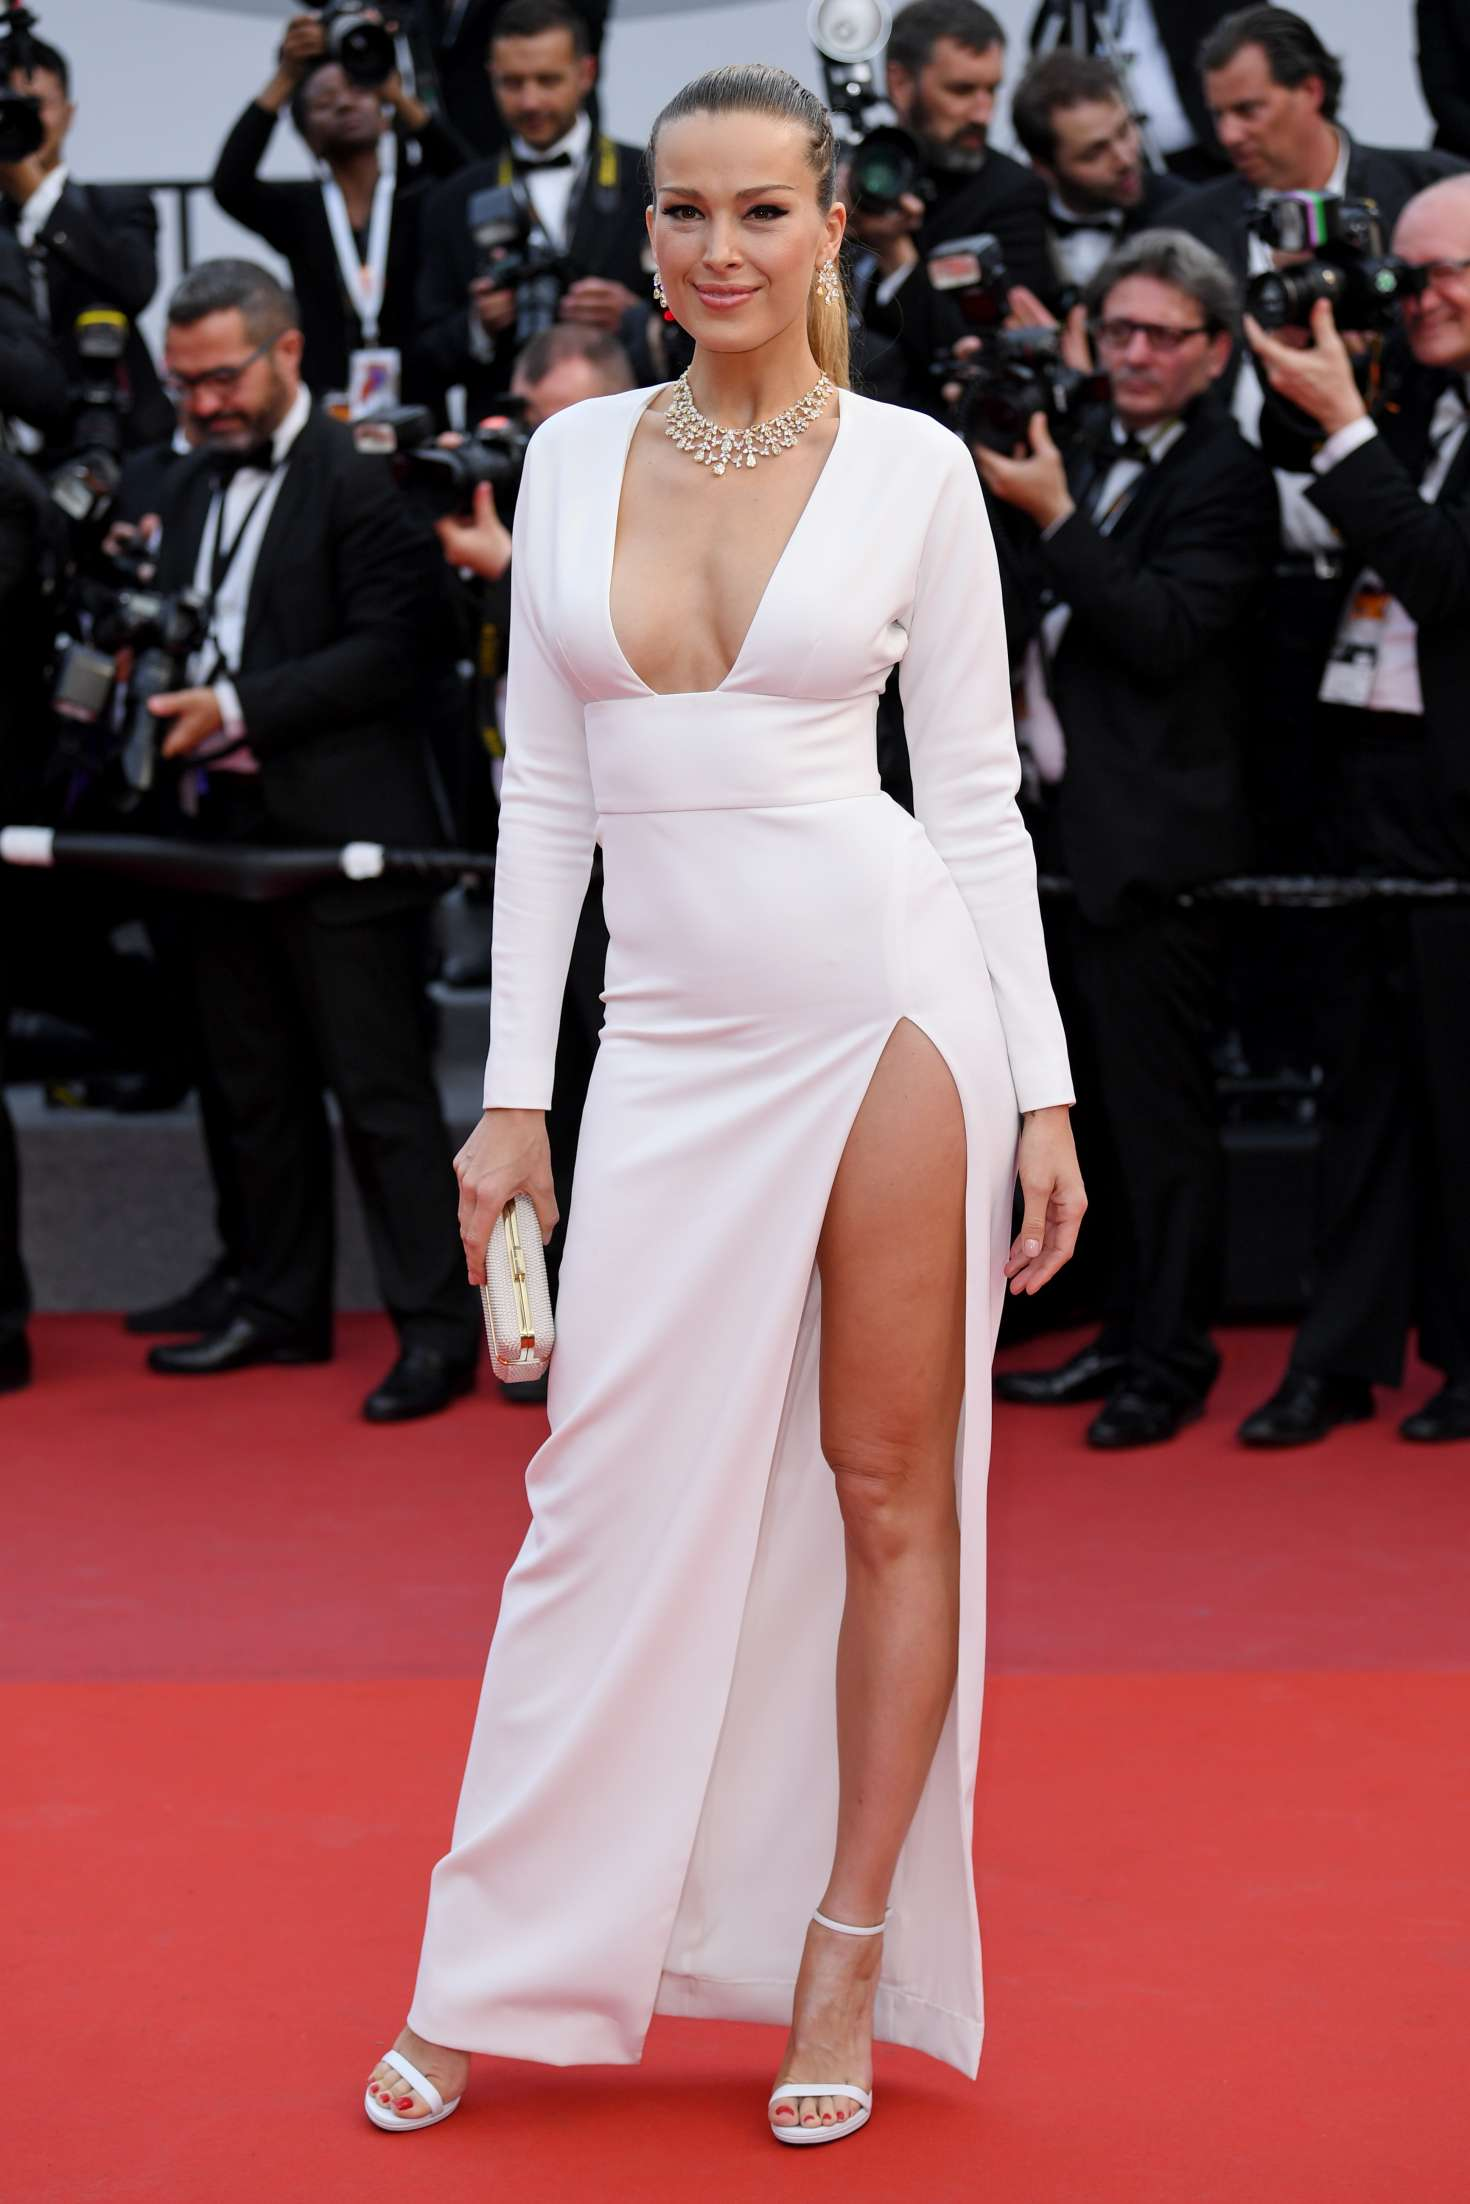 Cannes 2017 - Day 2 - Loveless première - Top Model & Chopard Ambassador Petra Nemcova